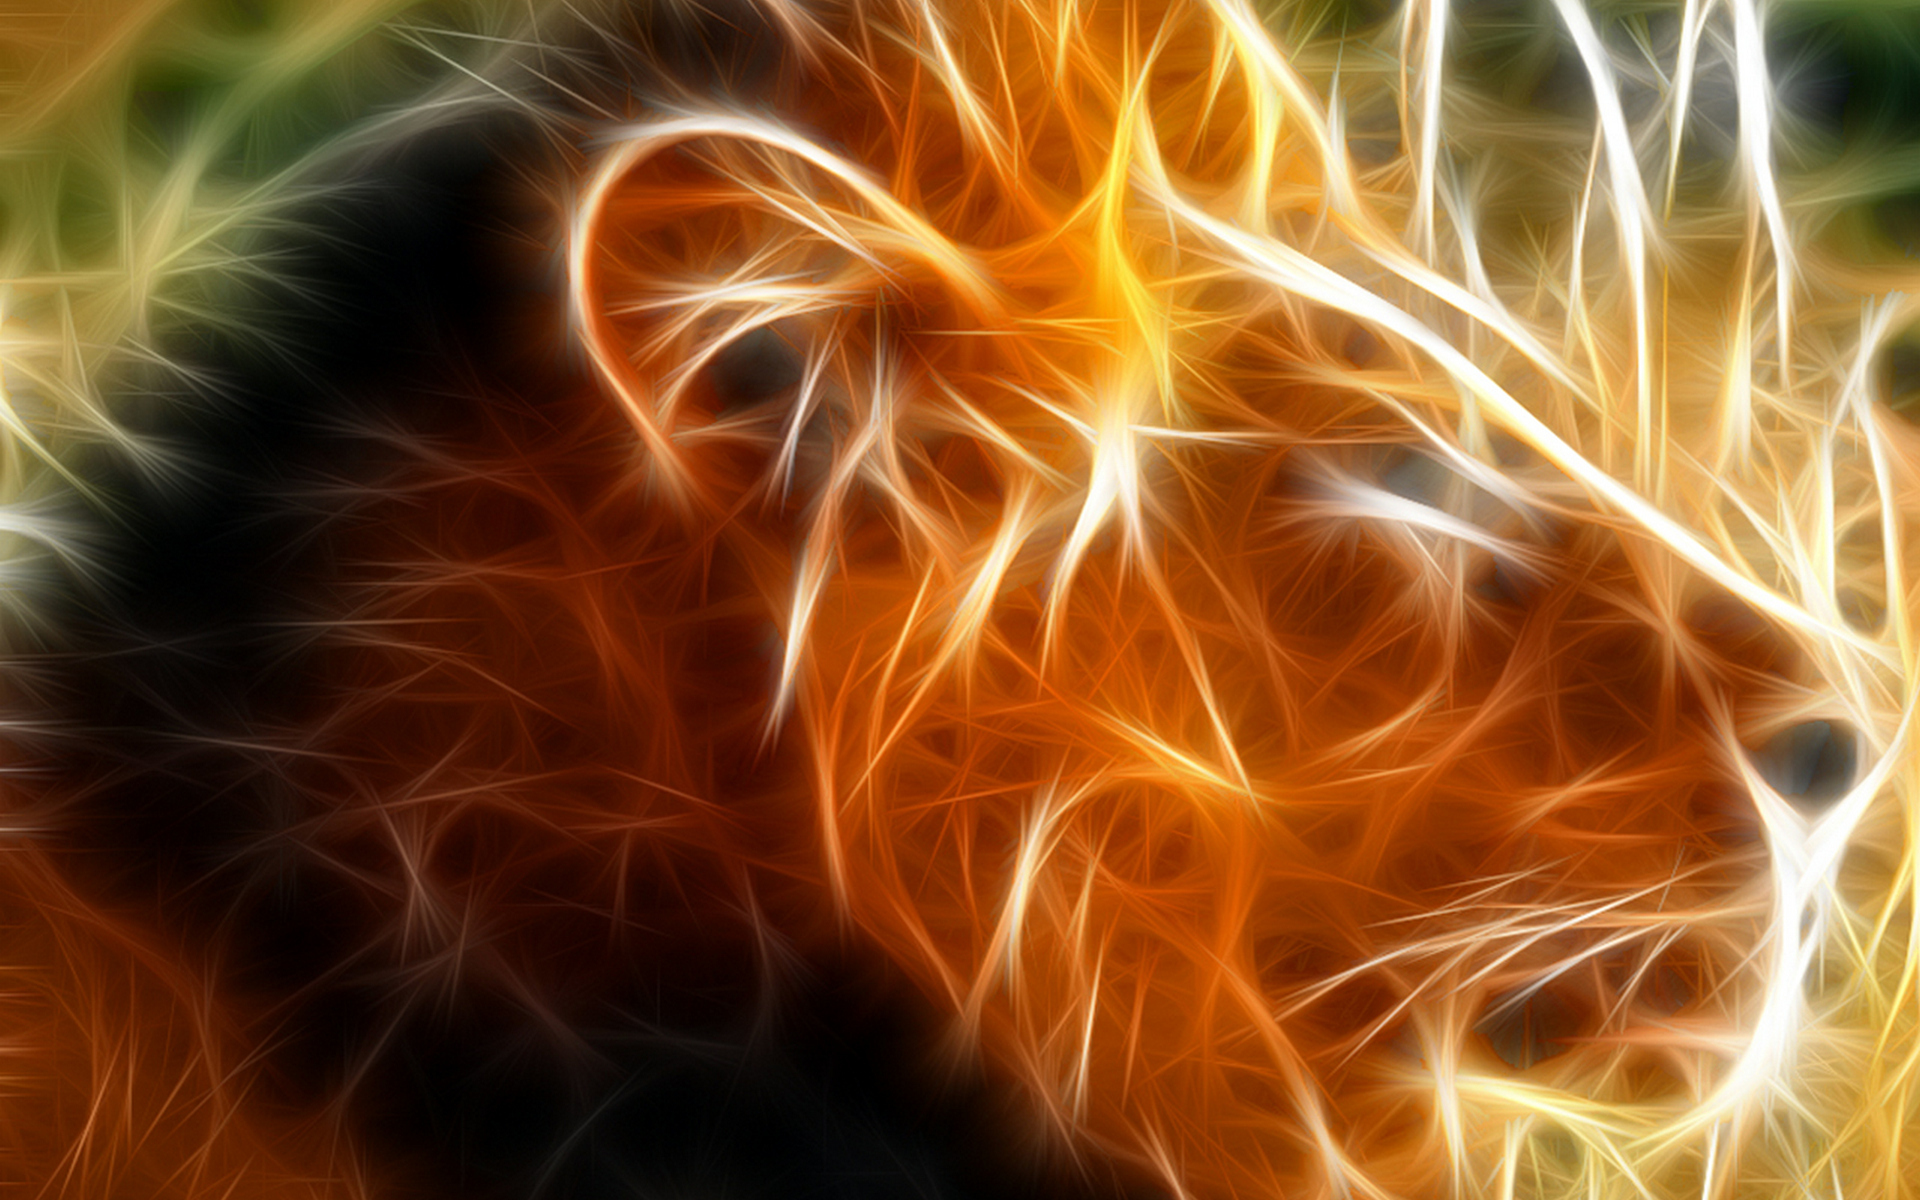 3d Cool Lion HD Wallpaper 2881 Wallpaper computer best website 1920x1200